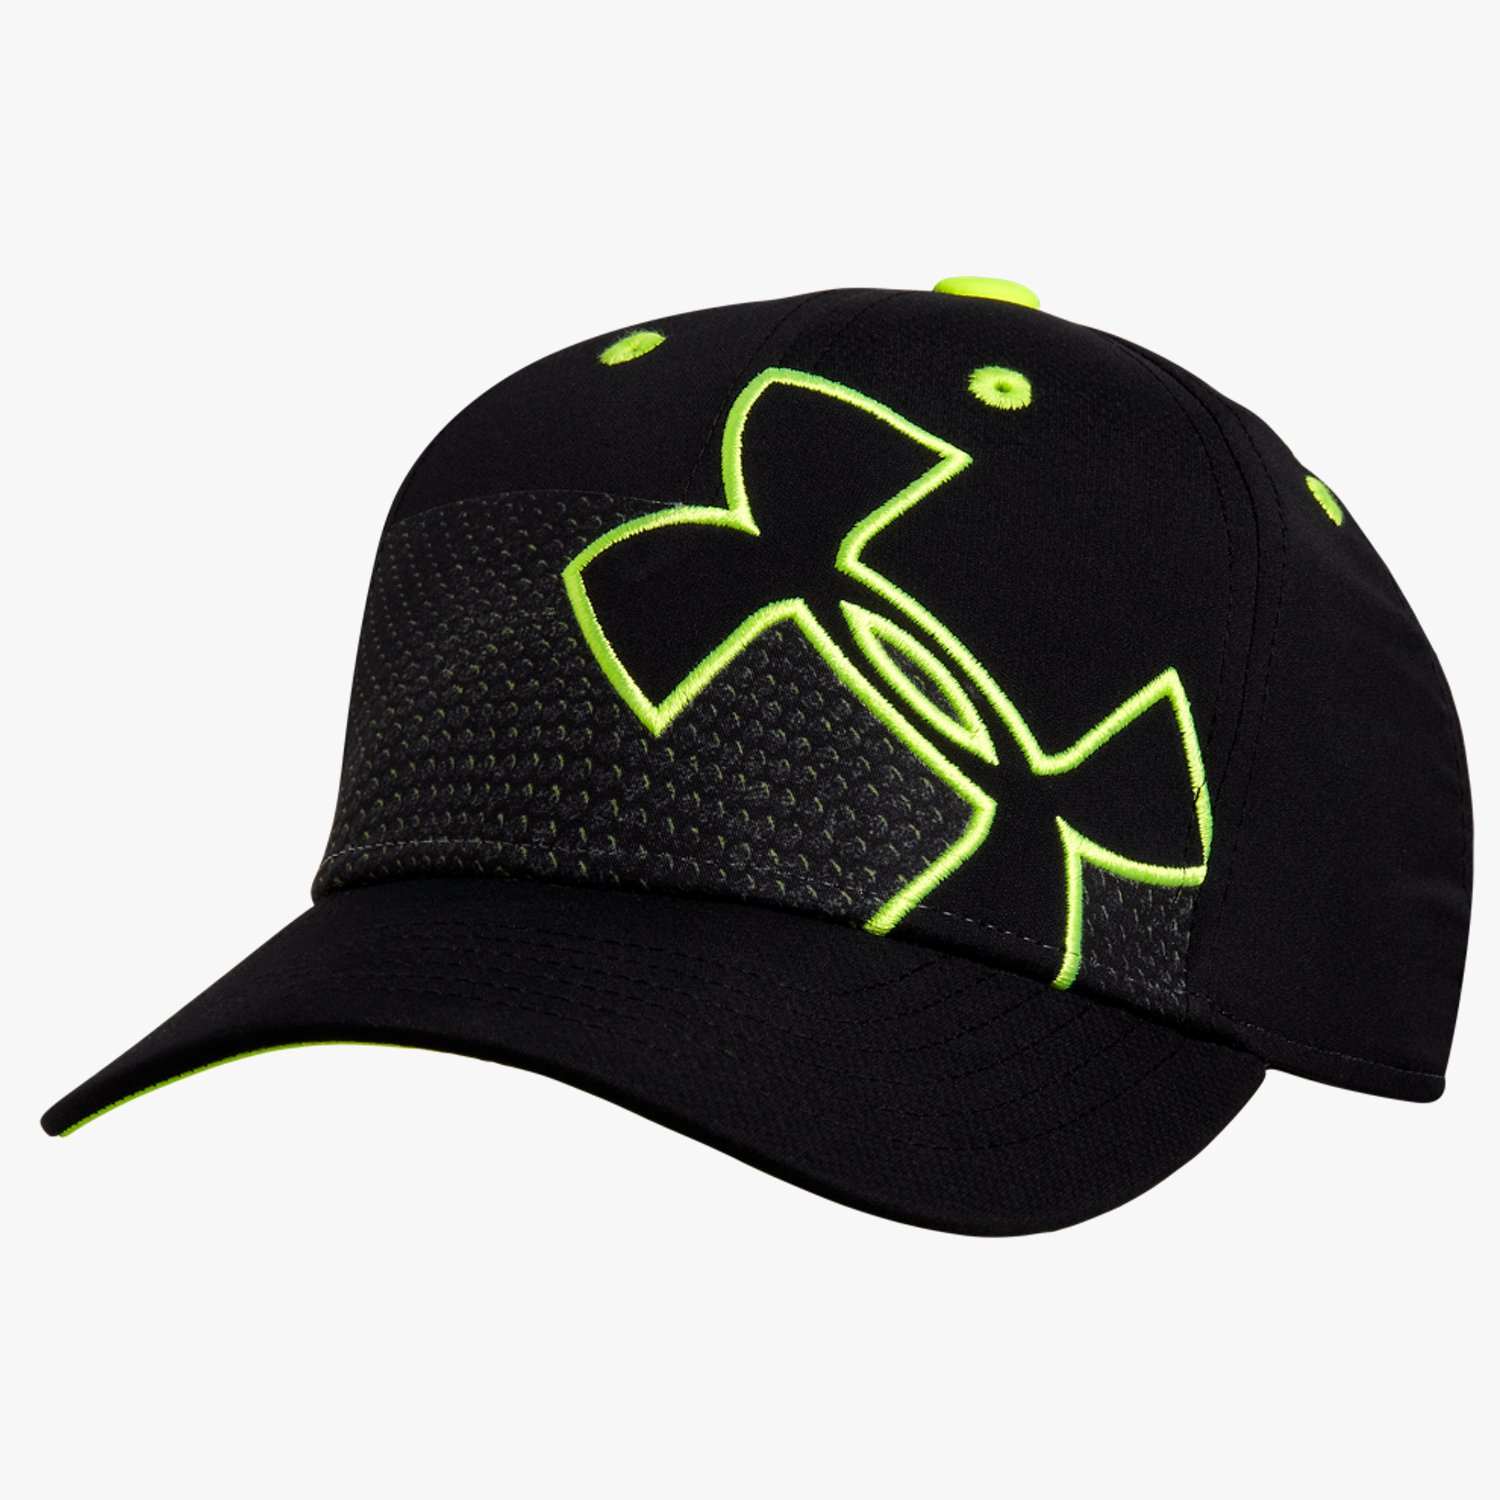 Under Armour Boy's UA Tiltin' Low Crown Stretch Fit Cap Black/High-Vis Yellow/High-Vis Yellow-30